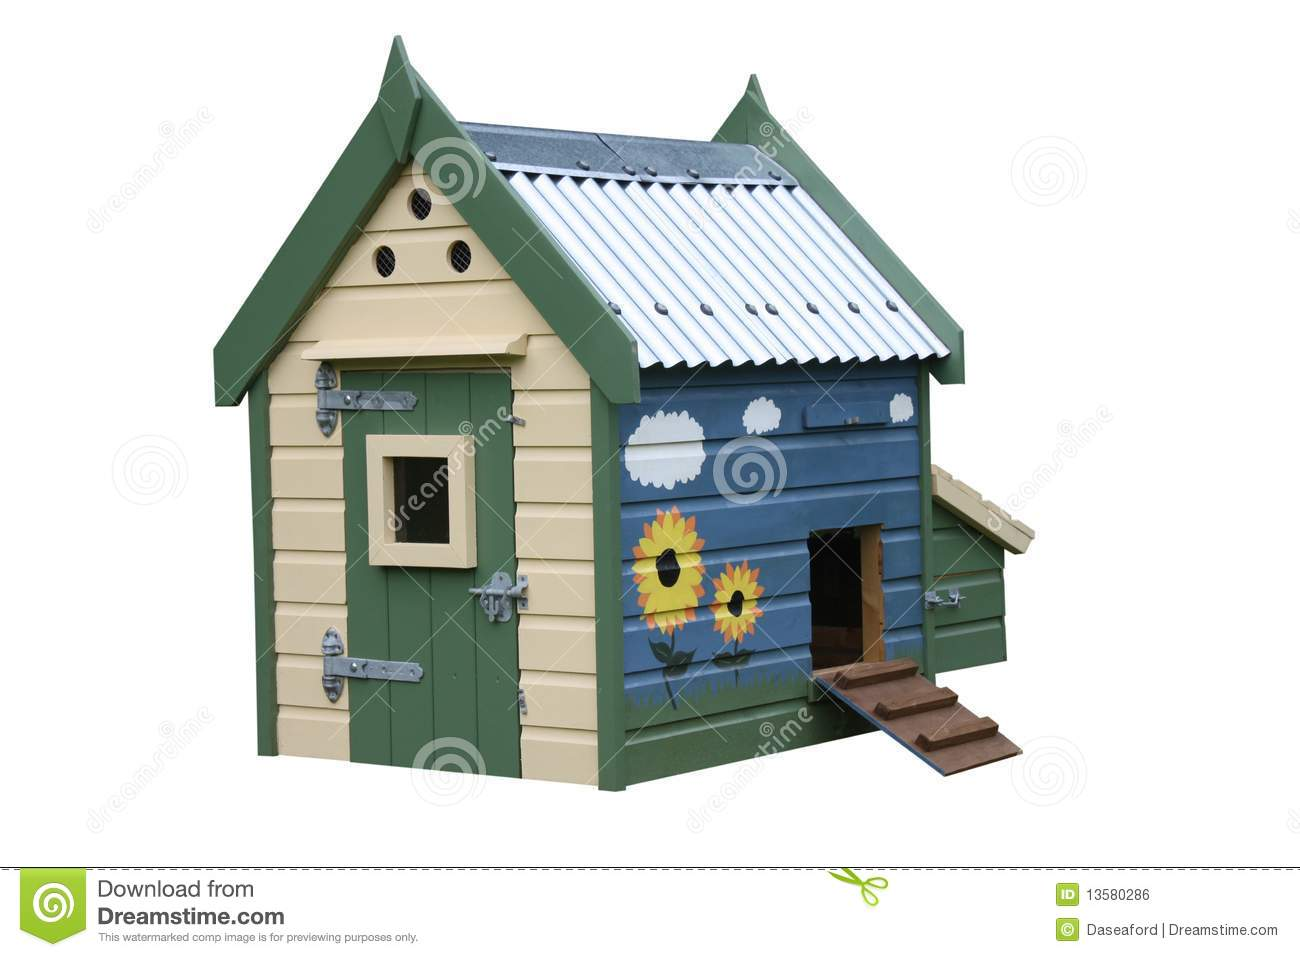 Duck house royalty free stock image image 13580286 for Building a duck house shelter